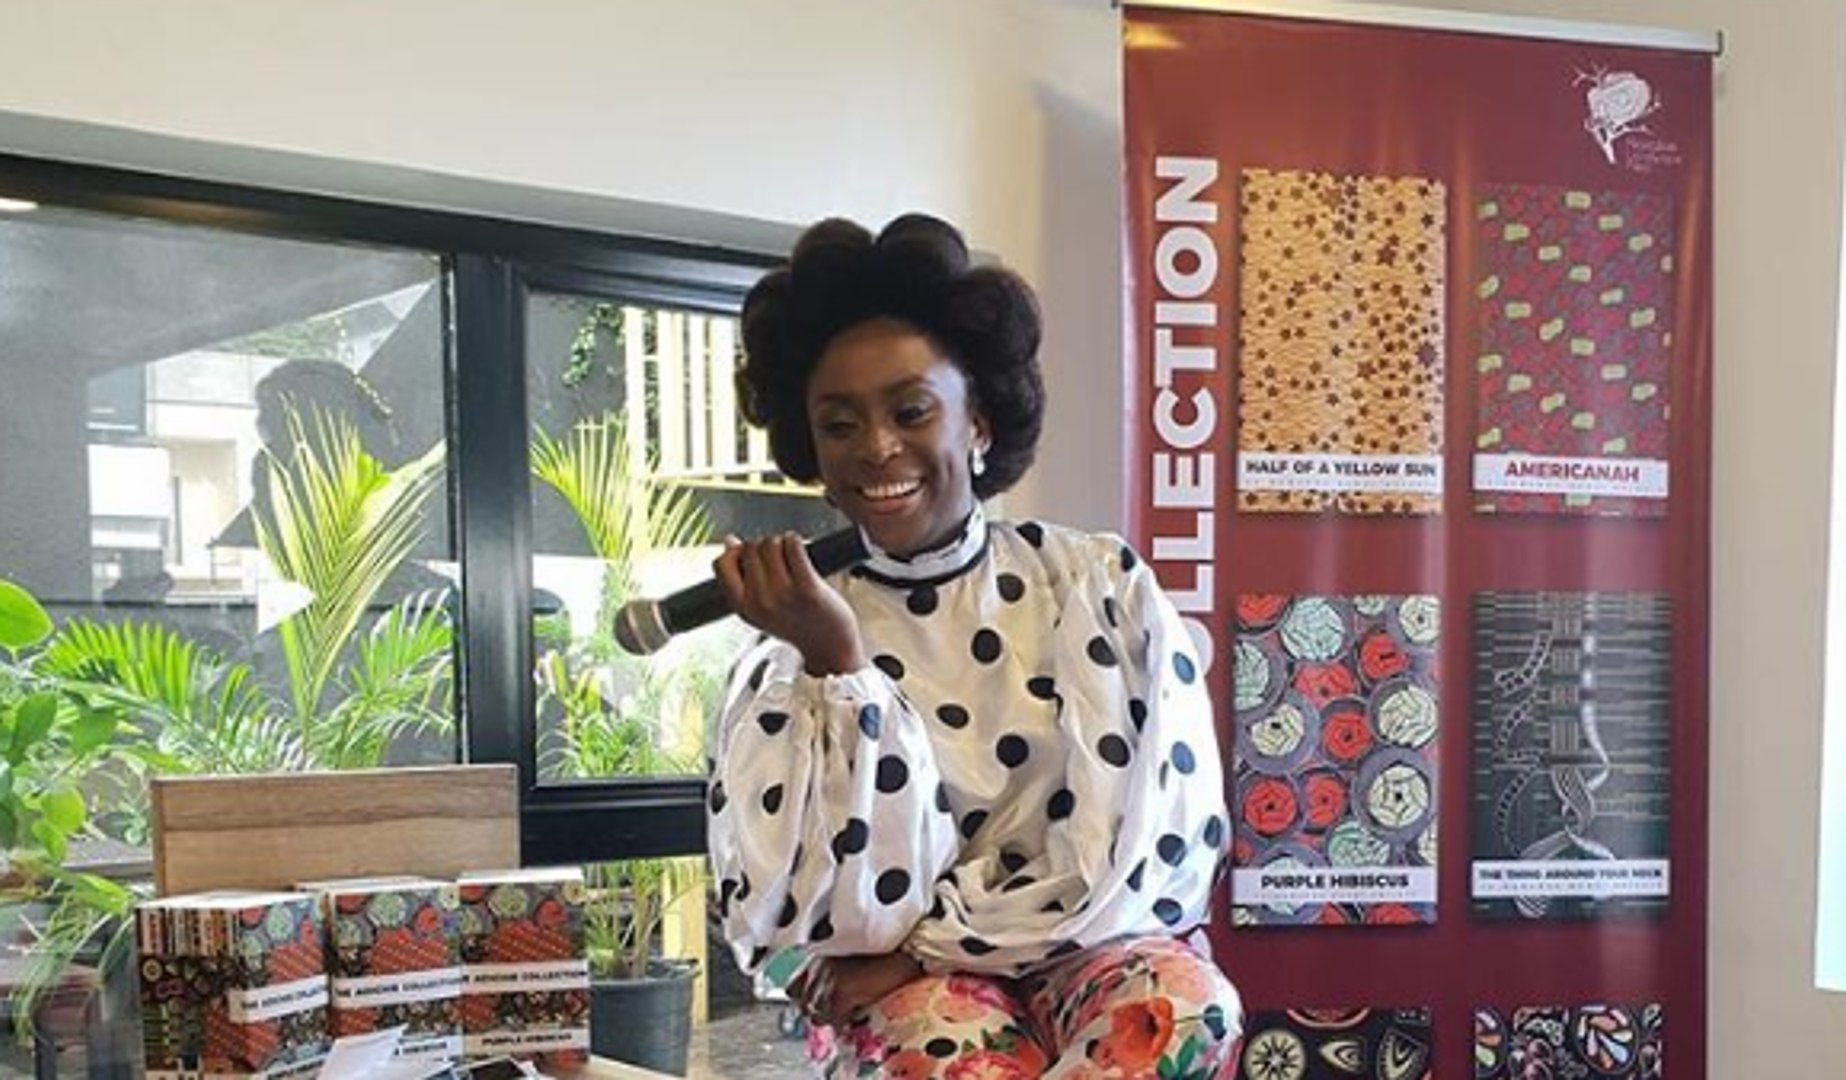 Nigerian author Chimamanda Adichie says bride price should be abolished (video) ▷ Nigeria news  NAI